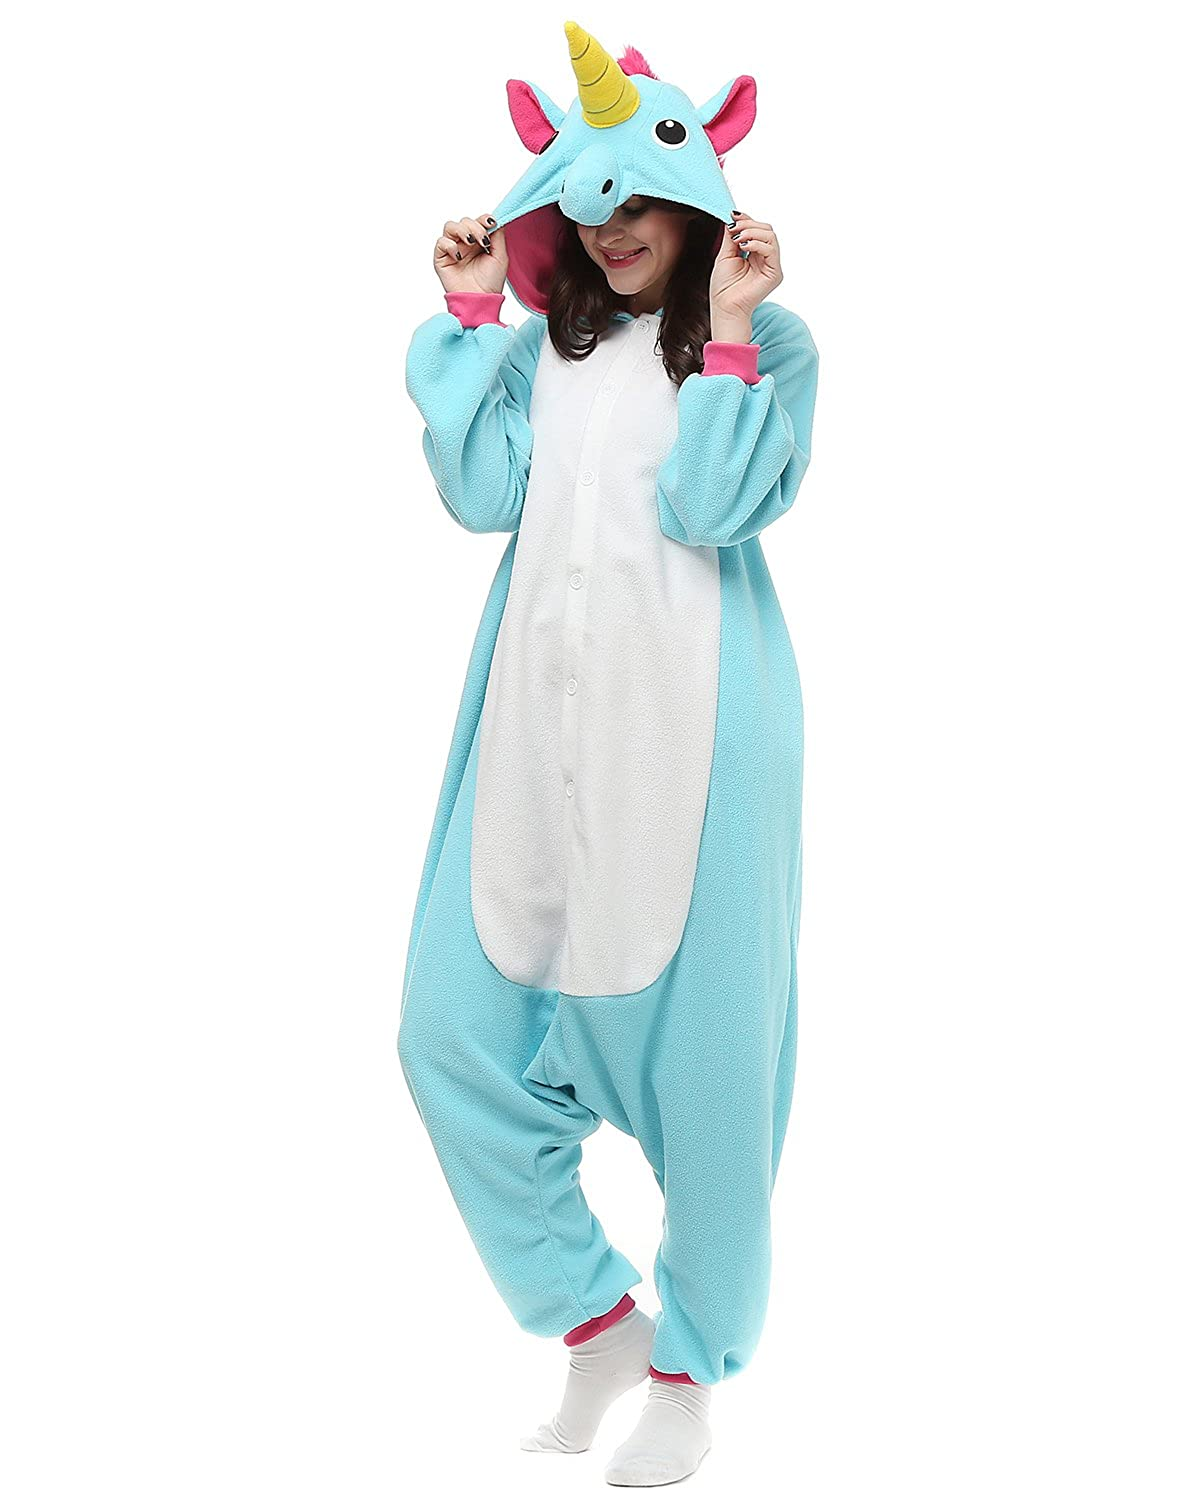 Amazon Hotu Adult Onesies Unicorn Pajamas Onesie For Women Men Costume Partywear Clothing